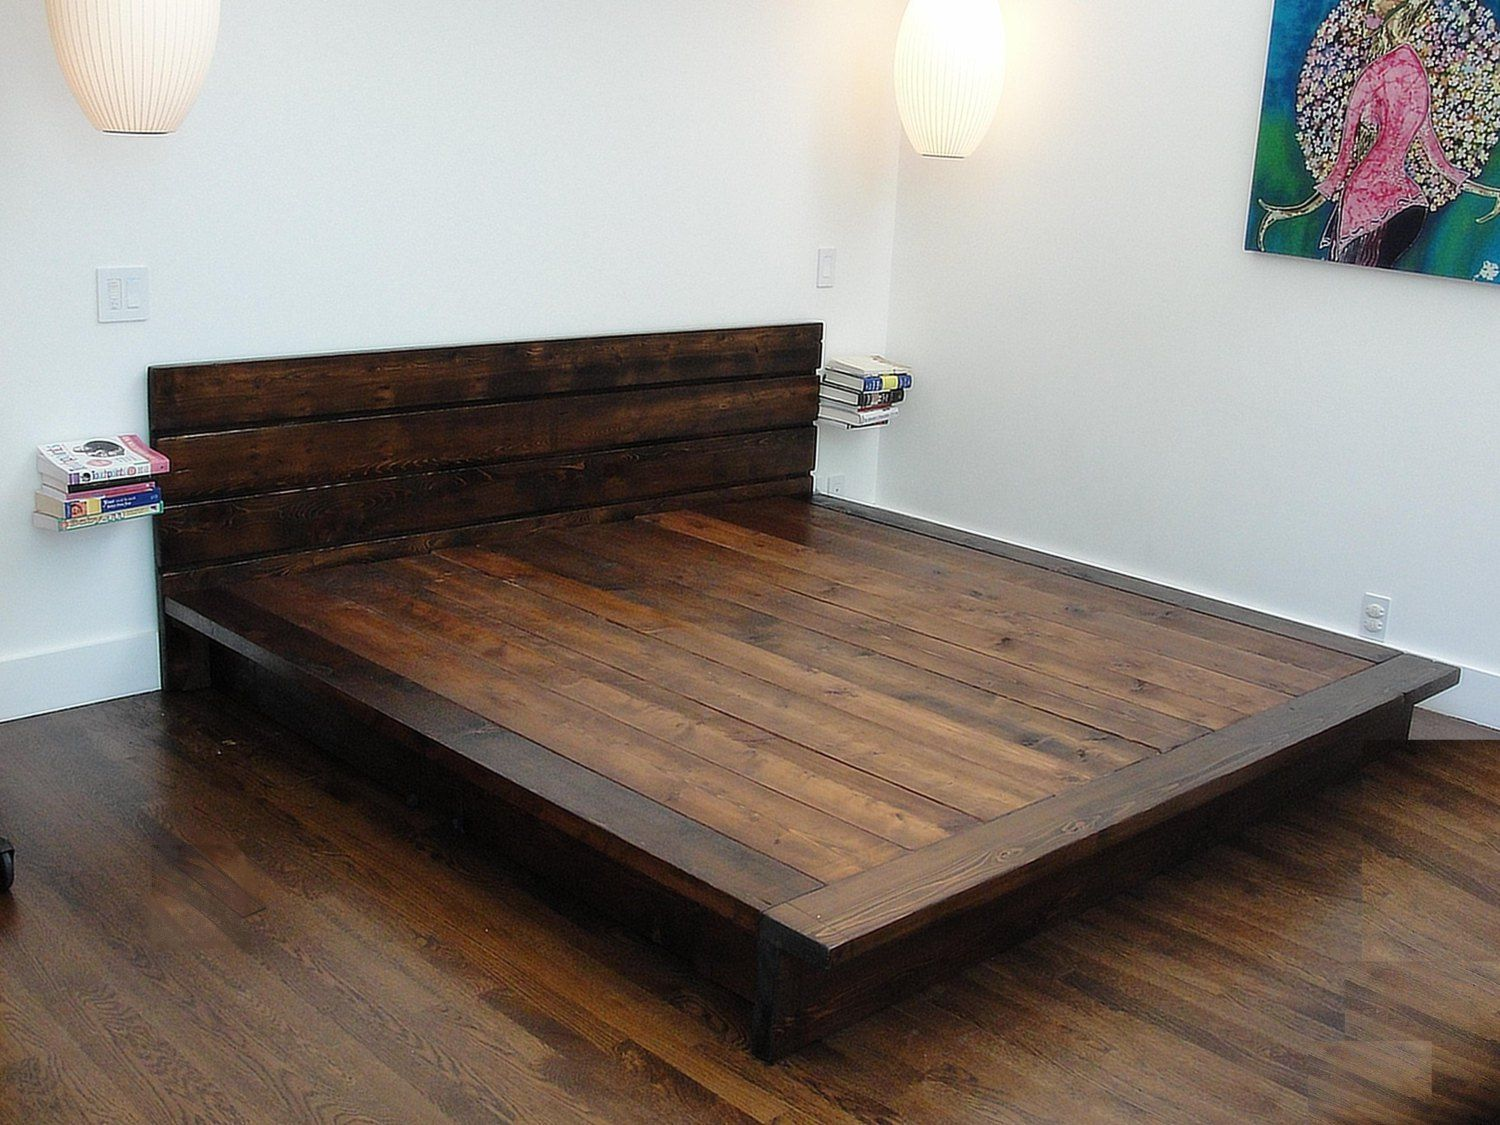 Tempting Diy Solid Wood Flat California King Platform Bed Frame Together With Headboard Andtiny Floating N Rustic Platform Bed Diy Bed Frame Platform Bed Plans